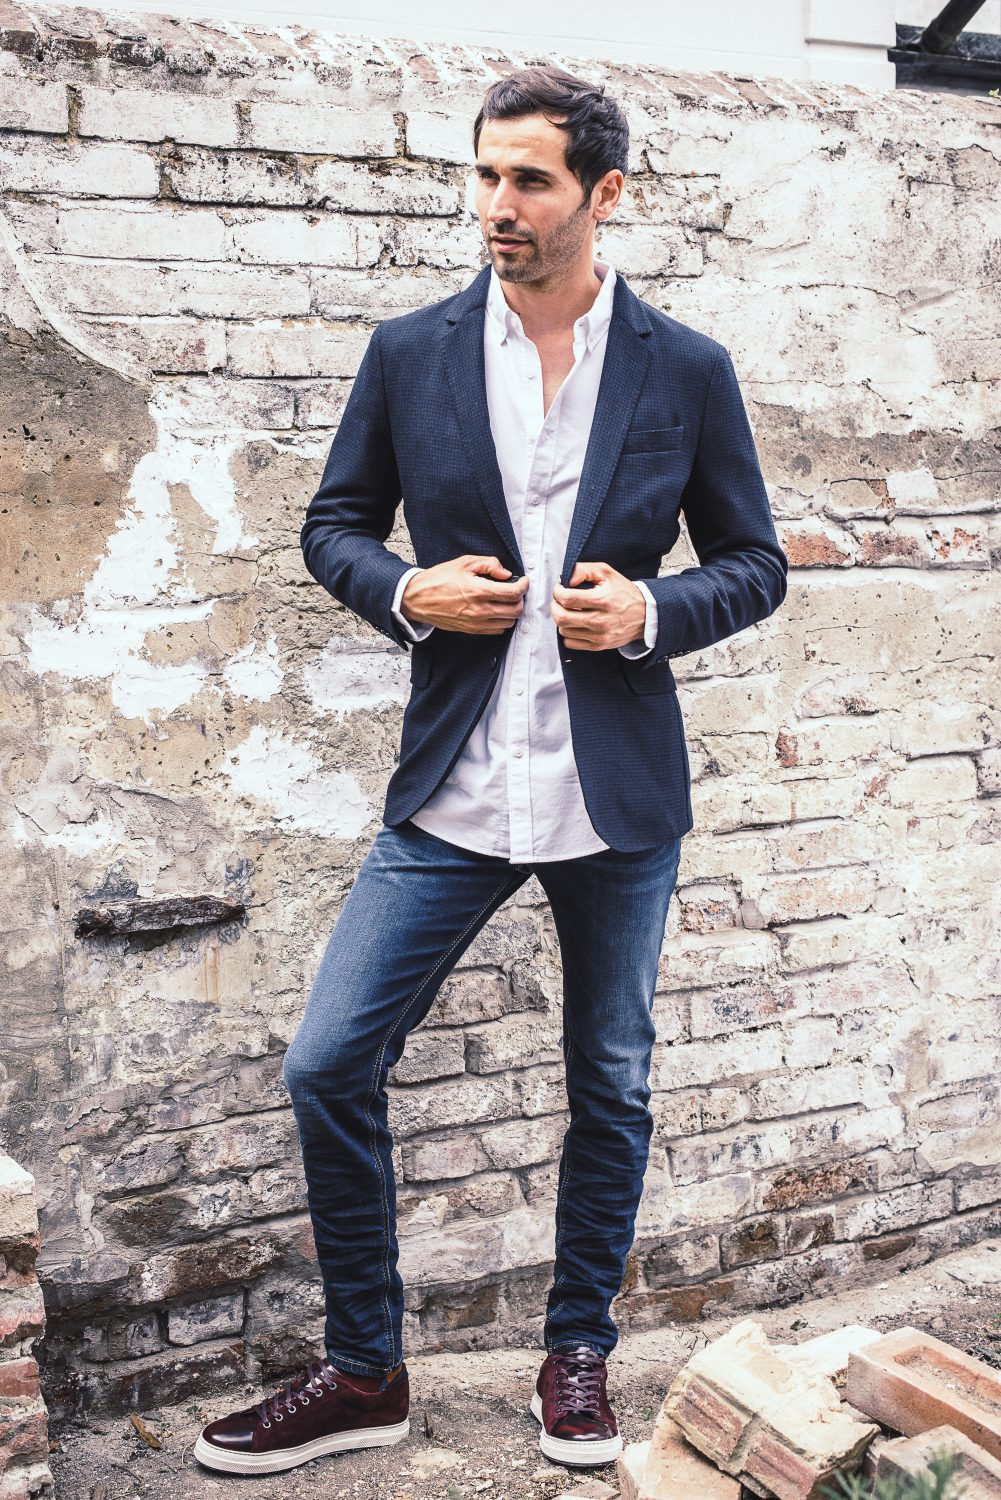 Slip a jacket over an untucked shirt for a relaxed look that isn't sloppy